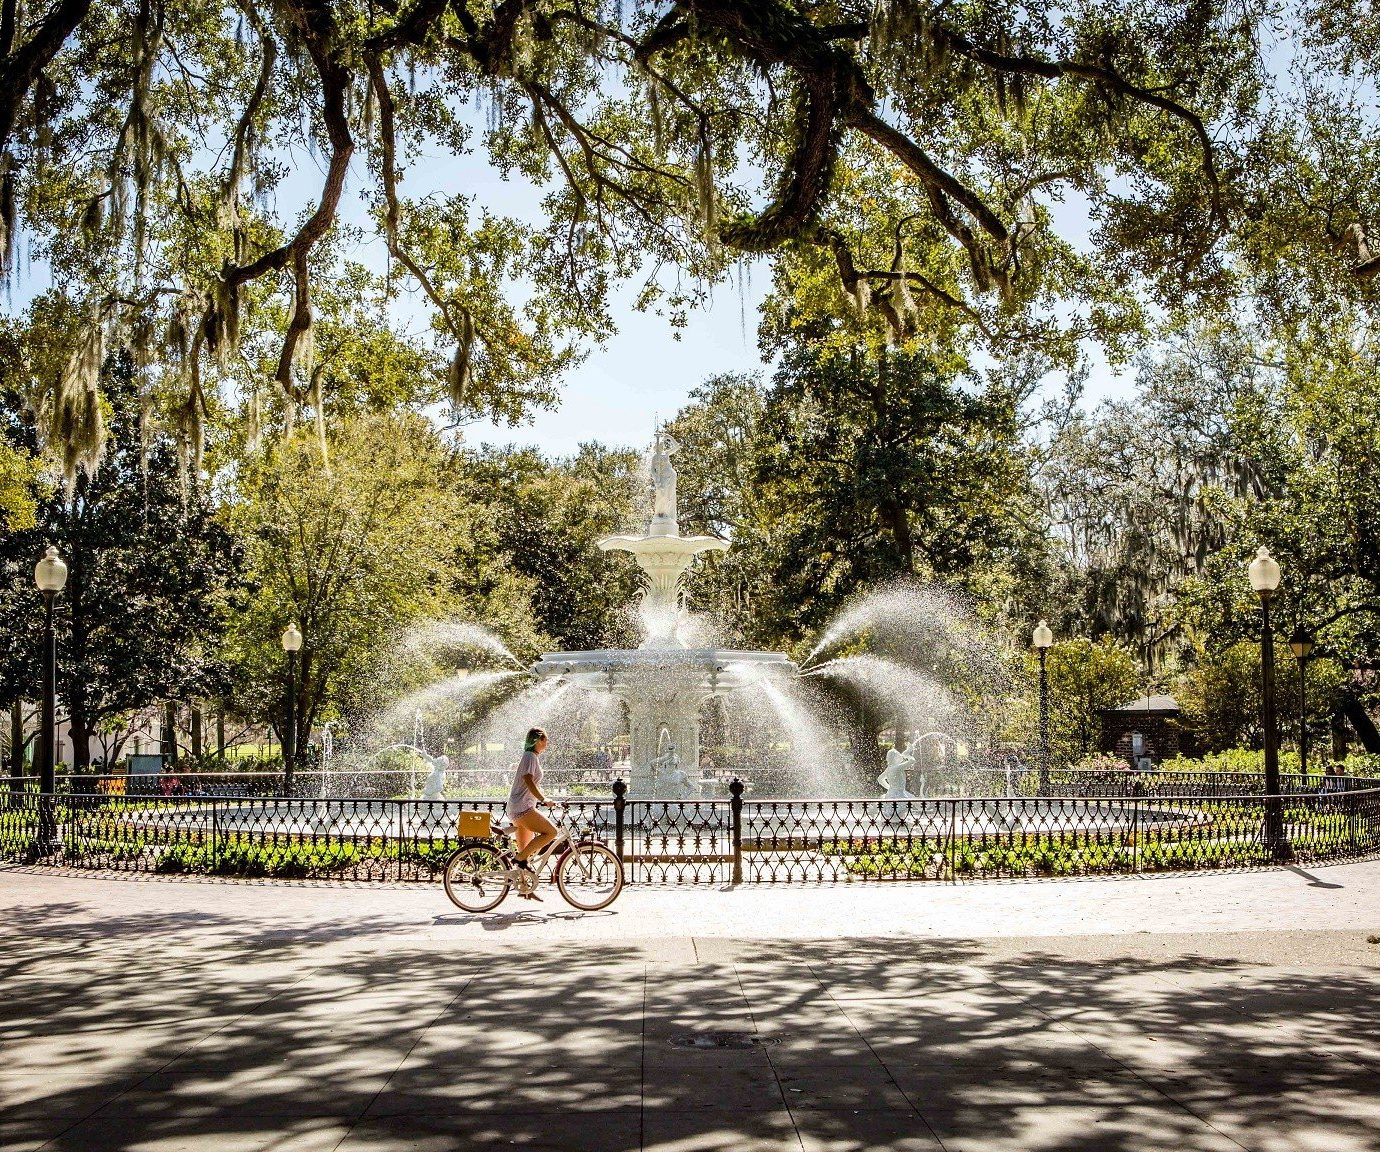 Fountain in a park at Savannah, GA